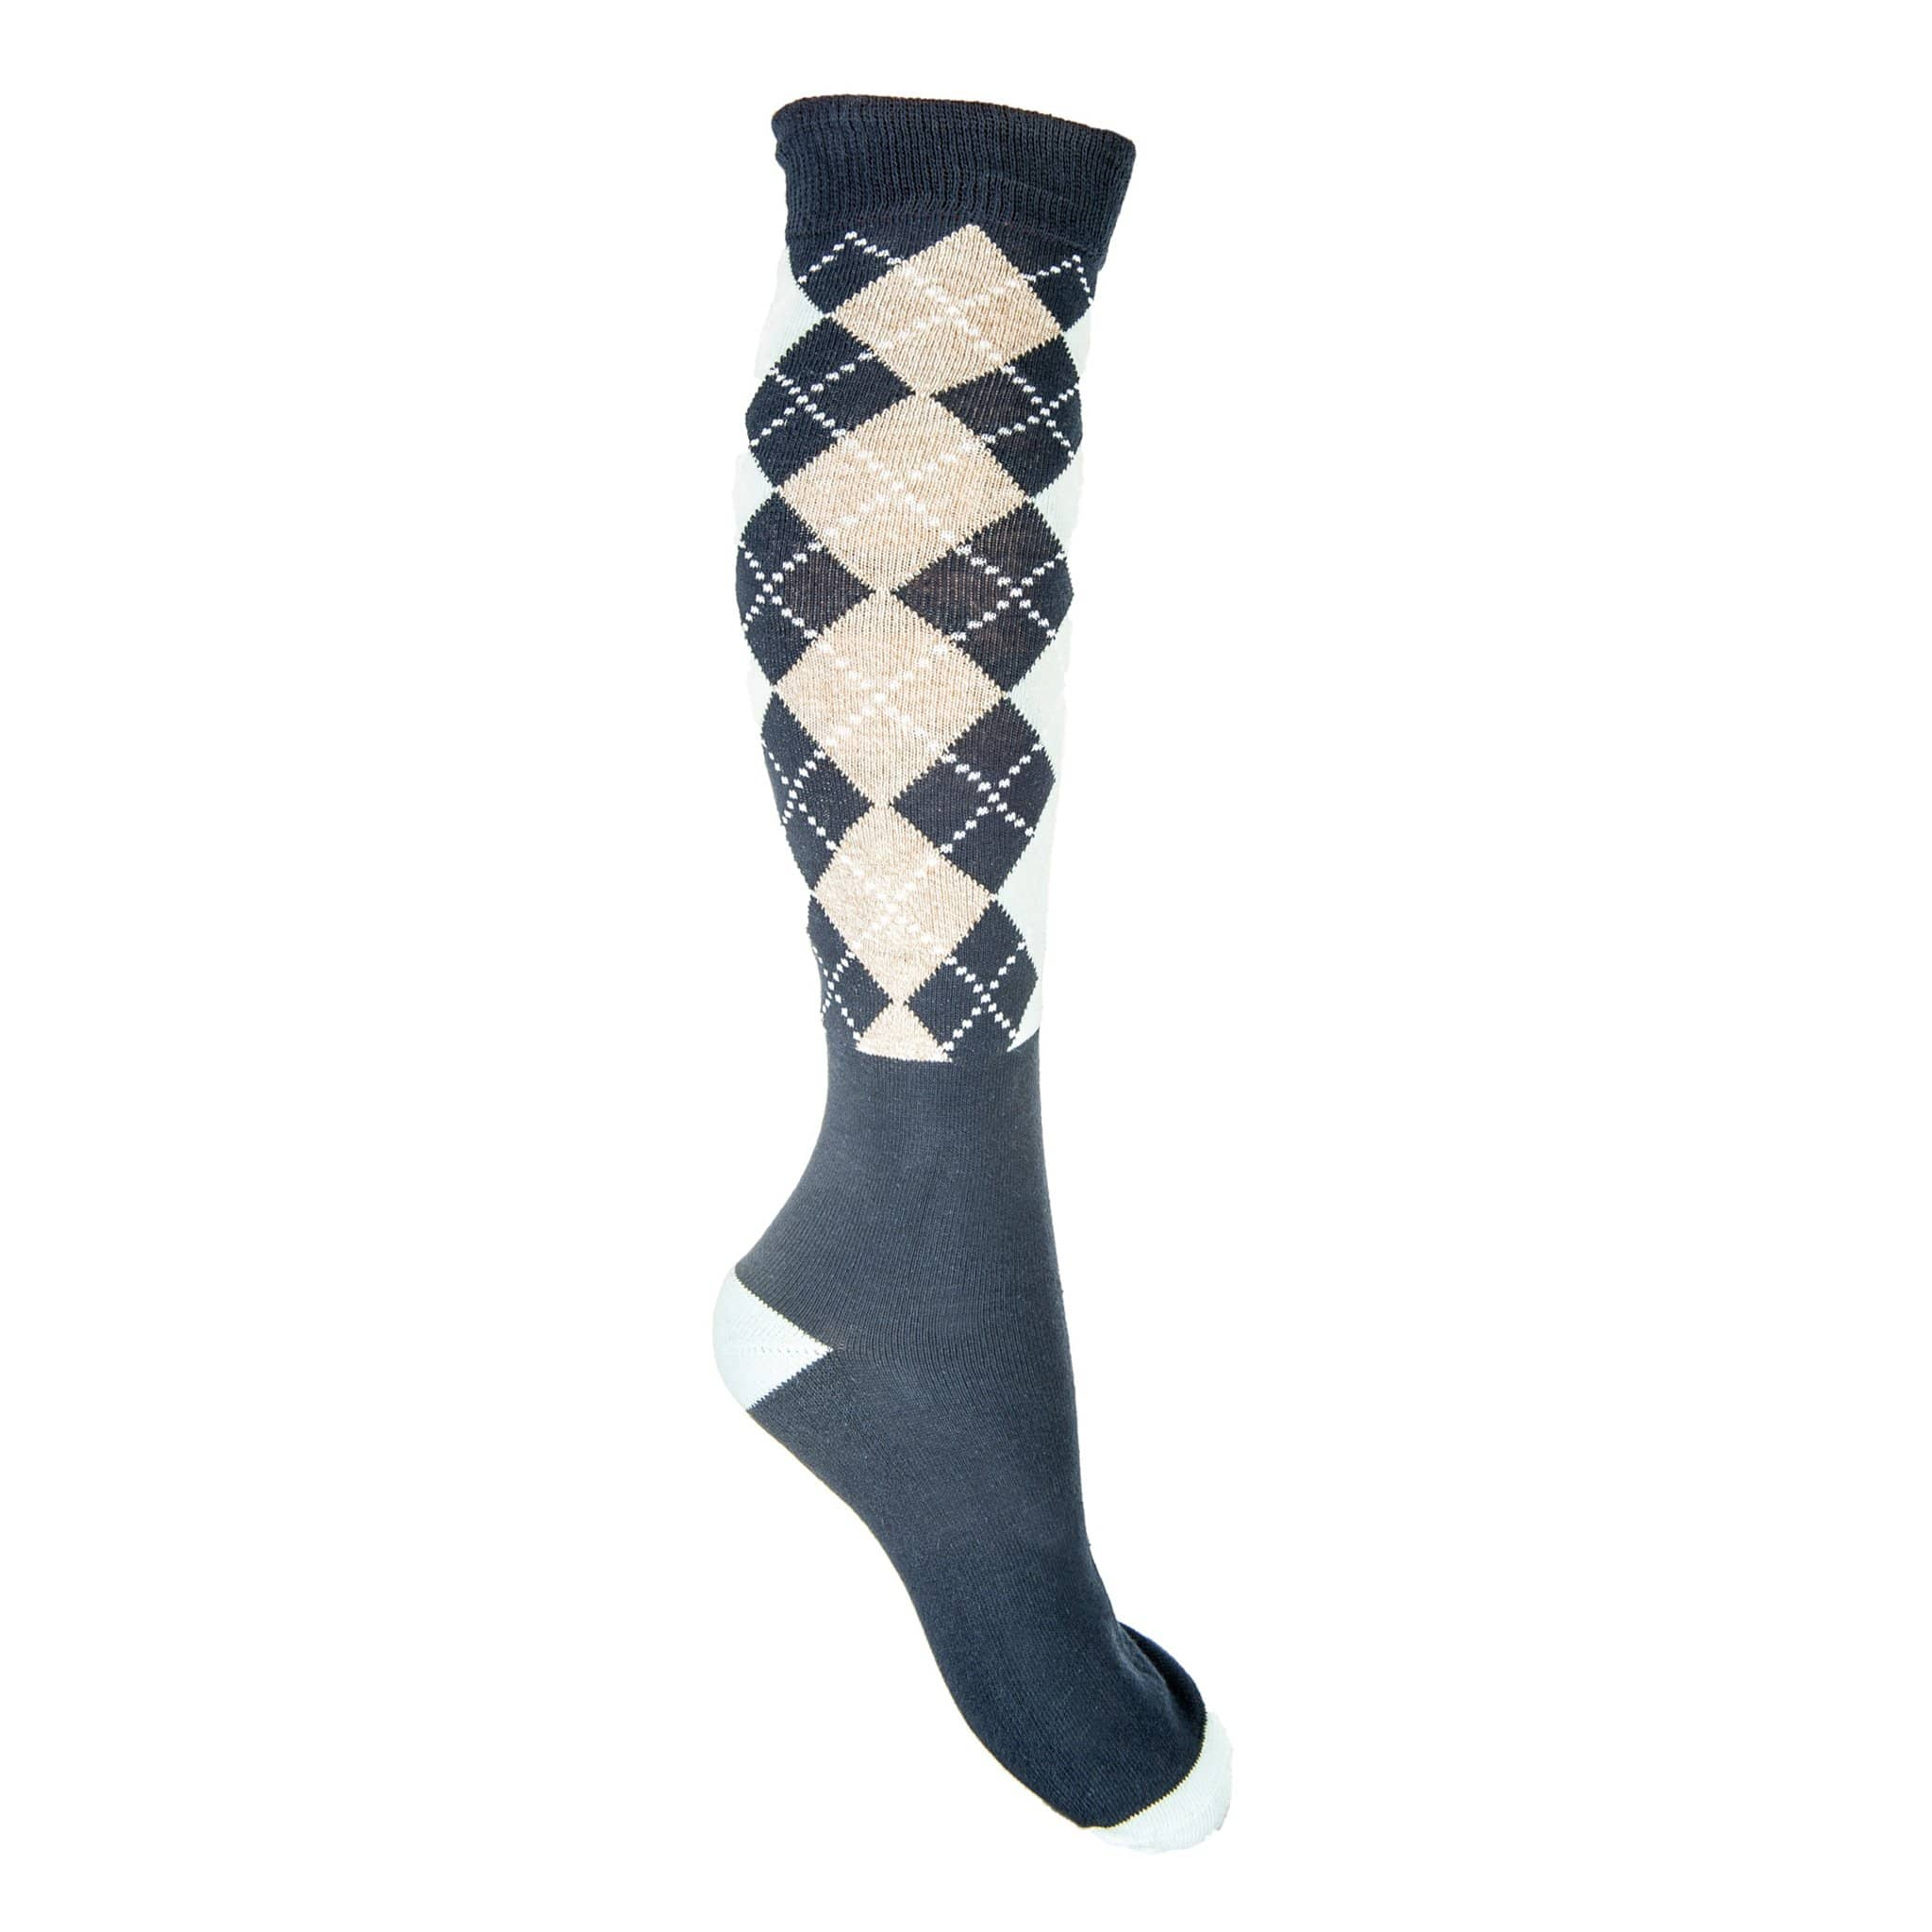 HKM Windsor Riding Sock in Baby Blue With Dark Blue